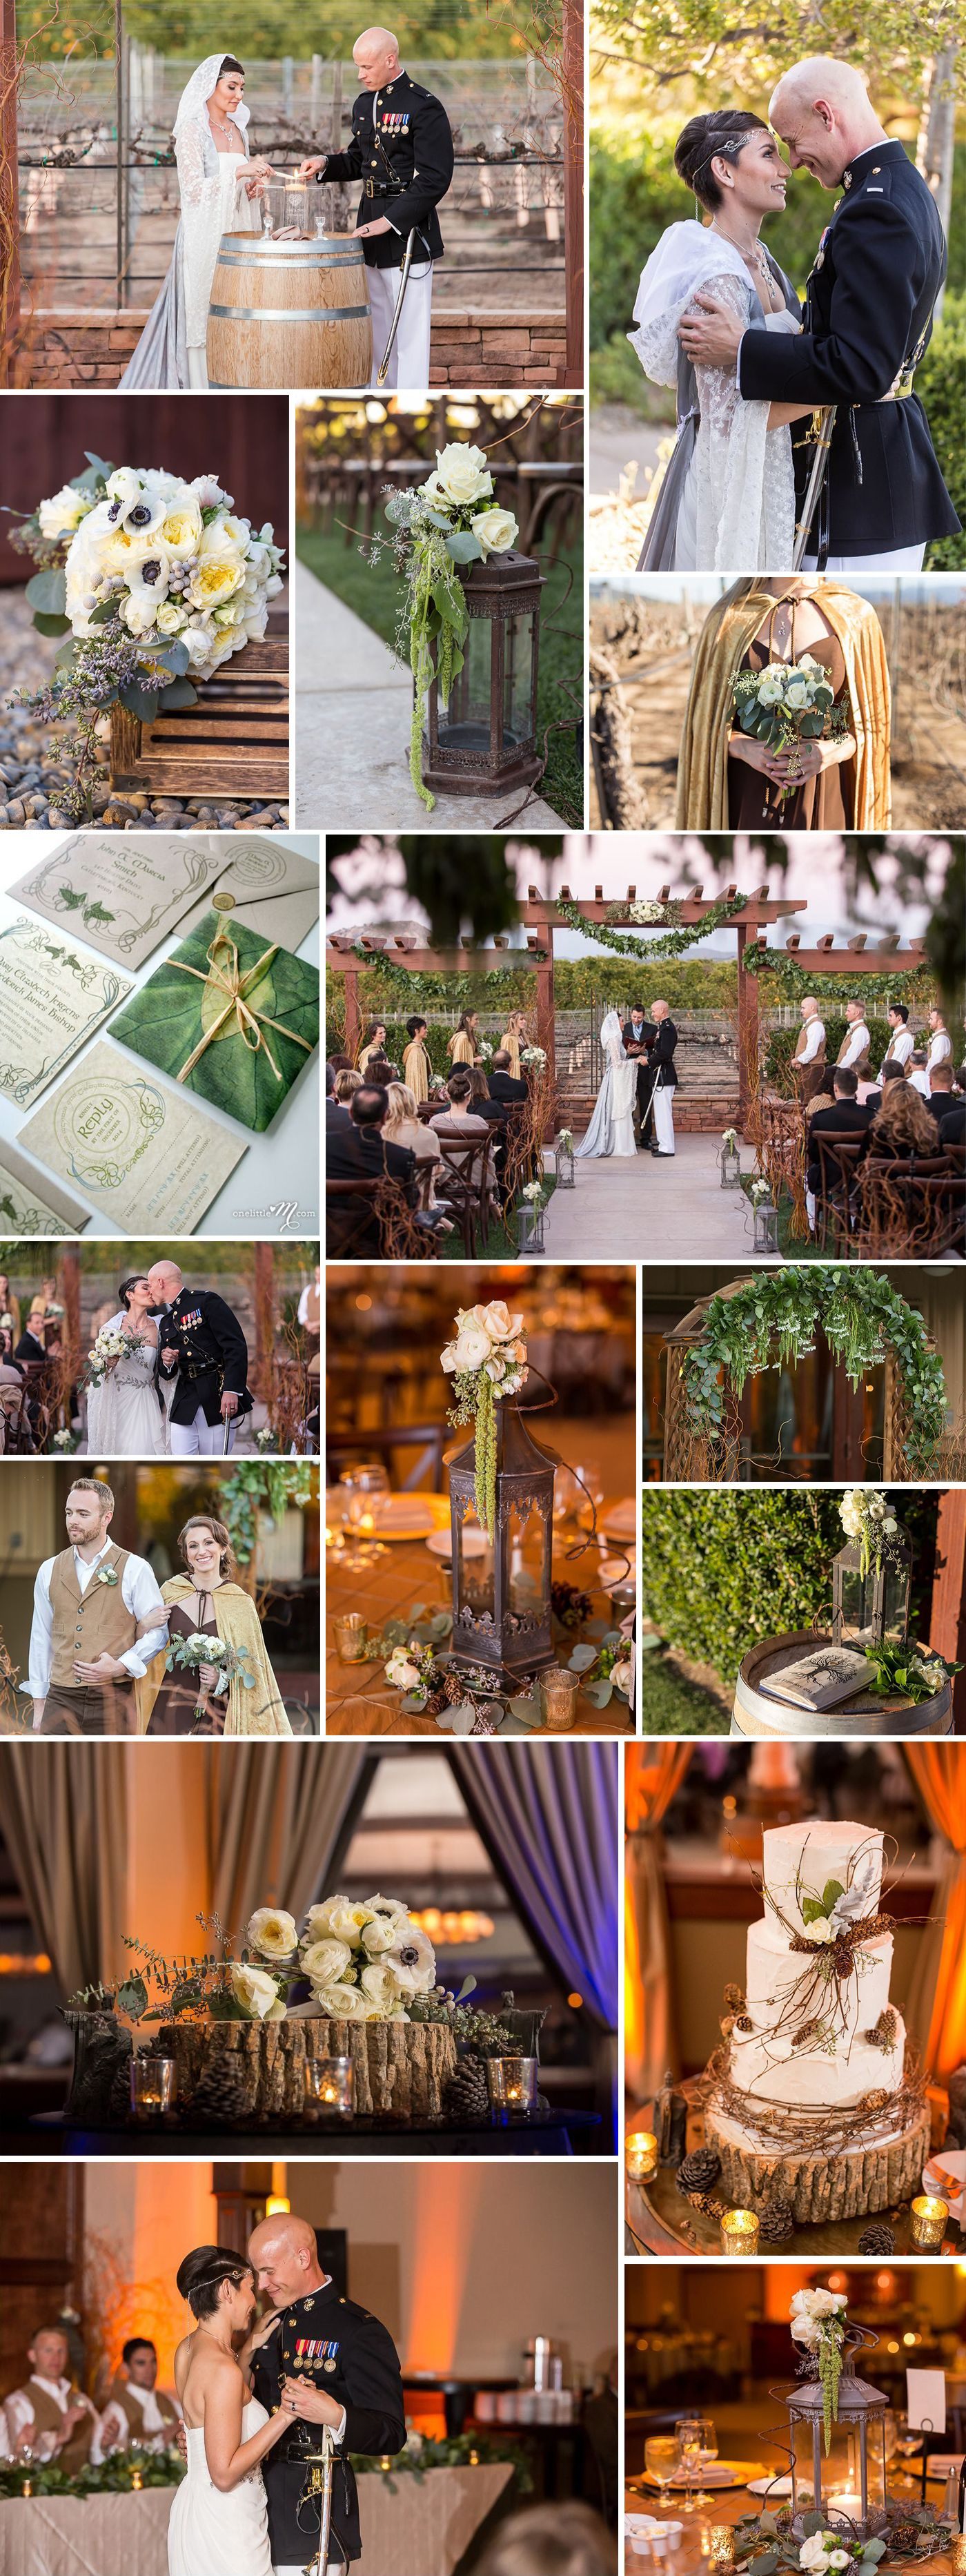 The Lord Of The Rings Wedding Theme Love The Mix Of Whimsey And